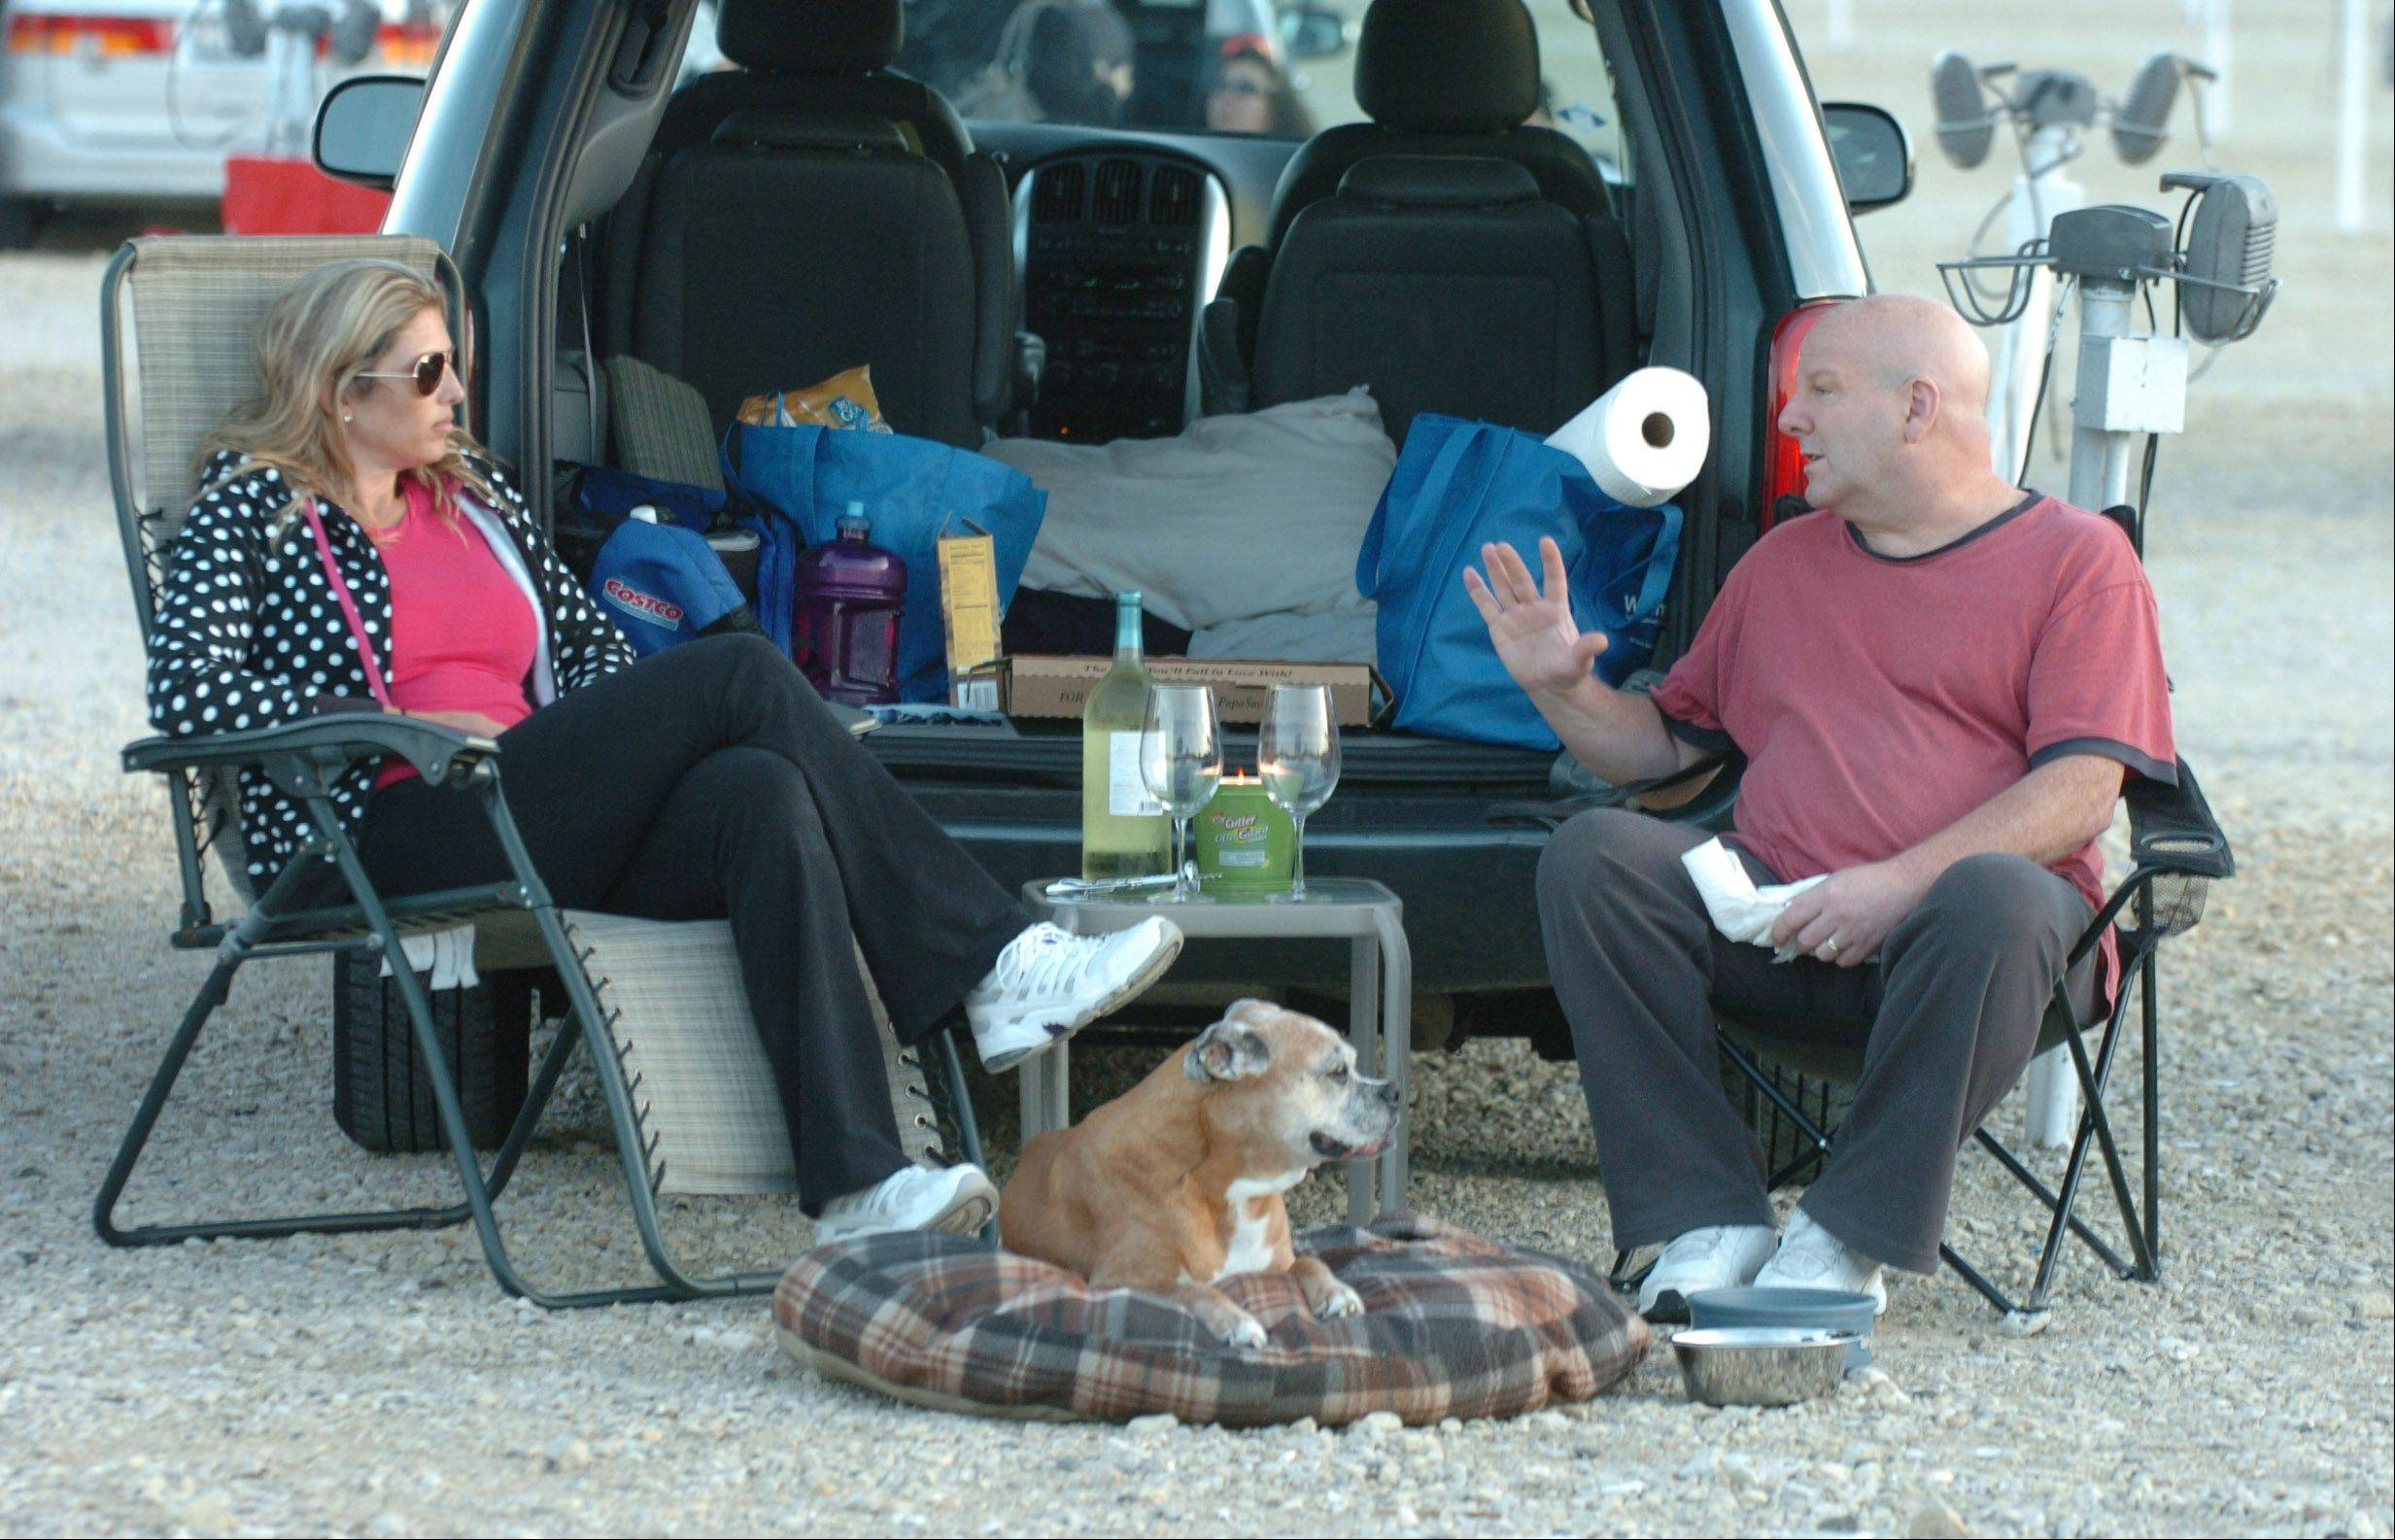 Greg and Lisa Schwartz of Carol Stream and their dog, Molly, prepare to enjoy the drive-in show with a pizza and a bottle of wine.